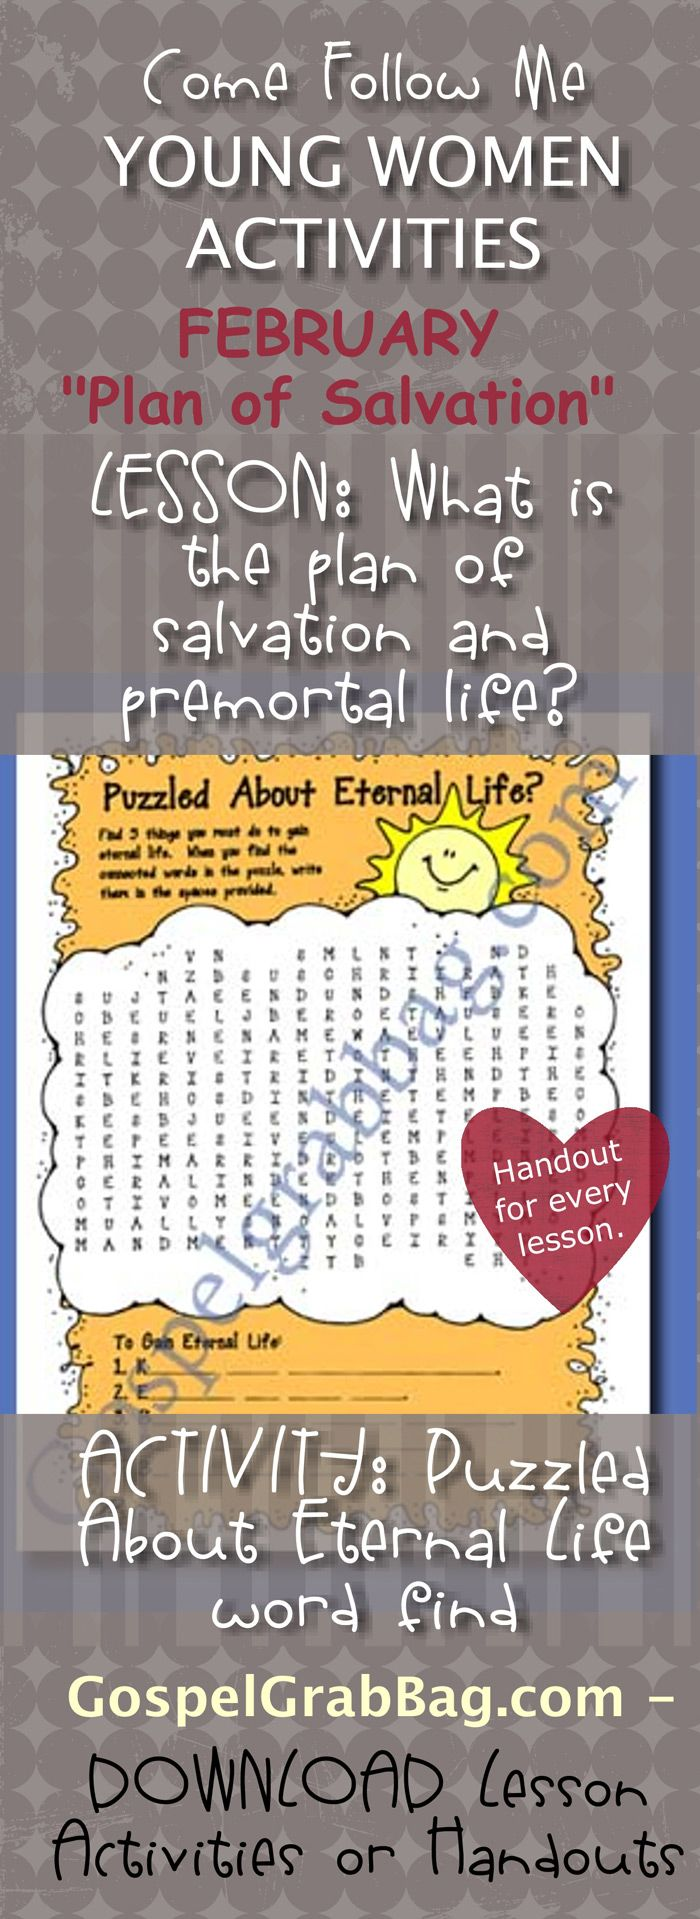 ETERNAL LIFE – PLAN OF SALVATION: Come Follow Me – LDS Young Women Activities, February Theme: The Plan of Salvation, Lesson Topic #1 What is the plan of salvation? handout for every lesson, ACTIVITY: Puzzled about Eternal Life wordfind, Gospel grab bag – handouts to download from gospelgrabbag.com